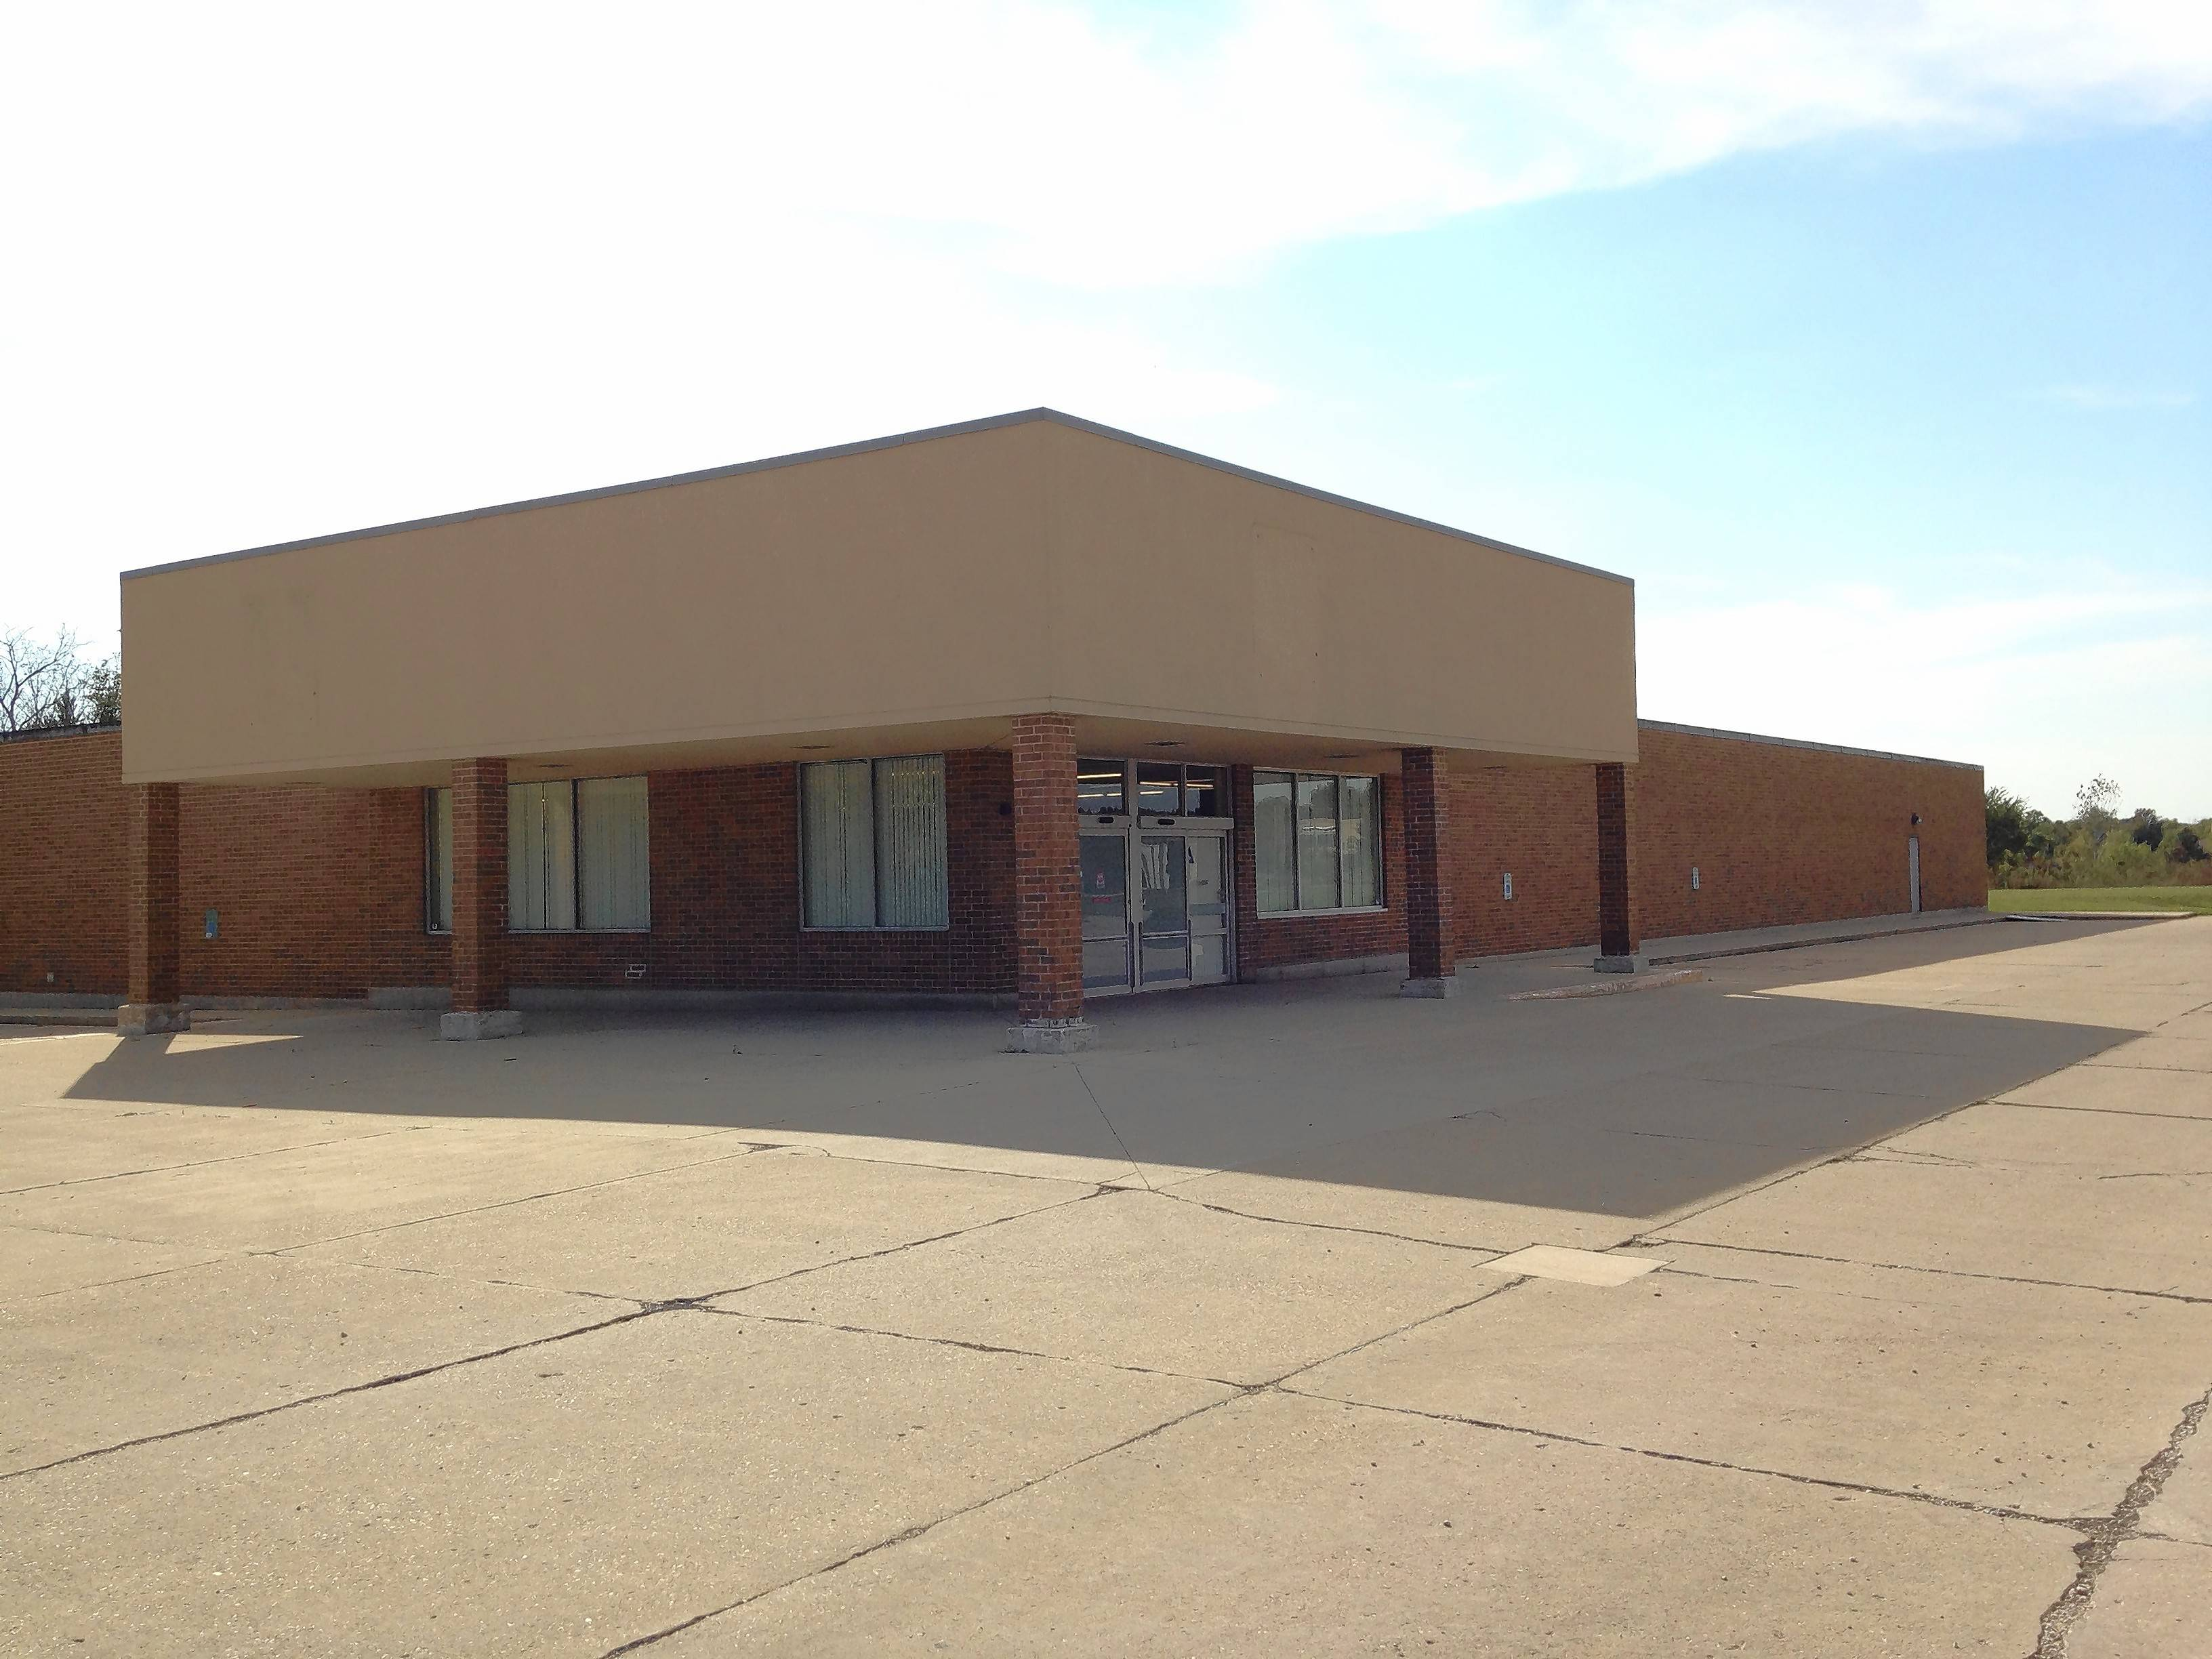 An auto-body repair business has proposed moving in to a former Aldi grocery store at 2080 Main St. in Batavia.